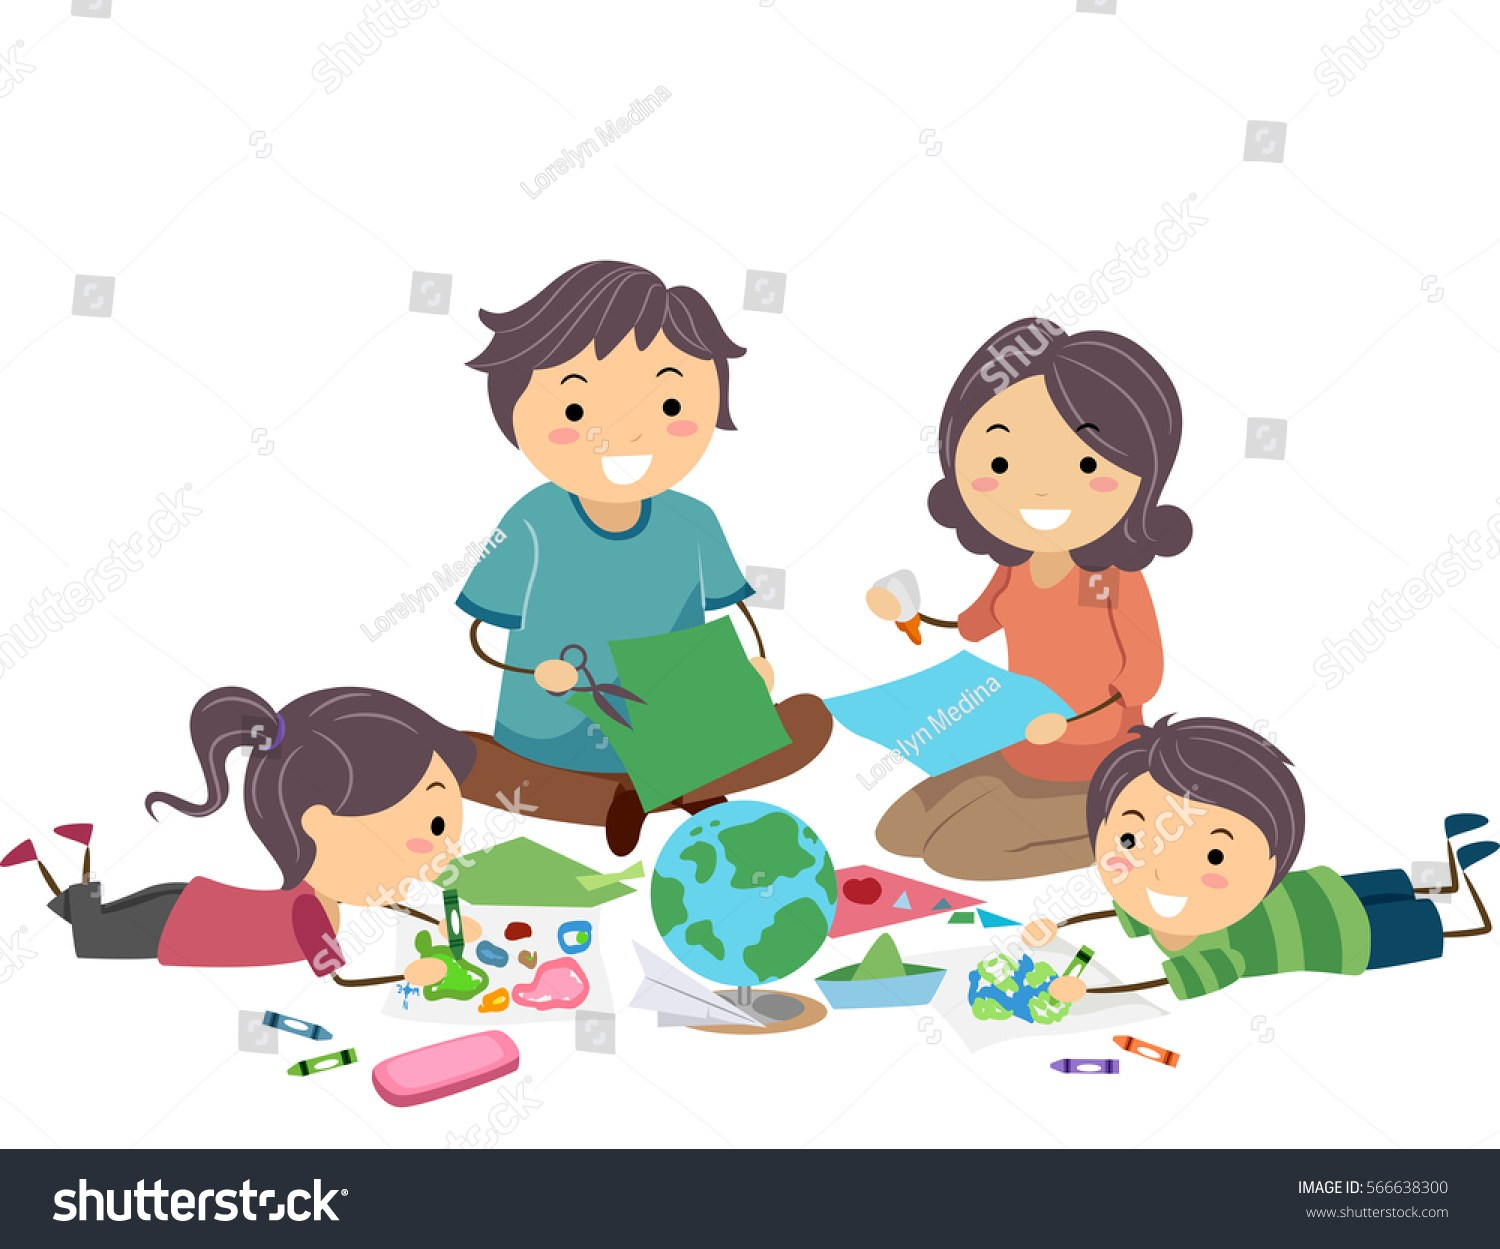 Family working together clipart 2 » Clipart Portal.